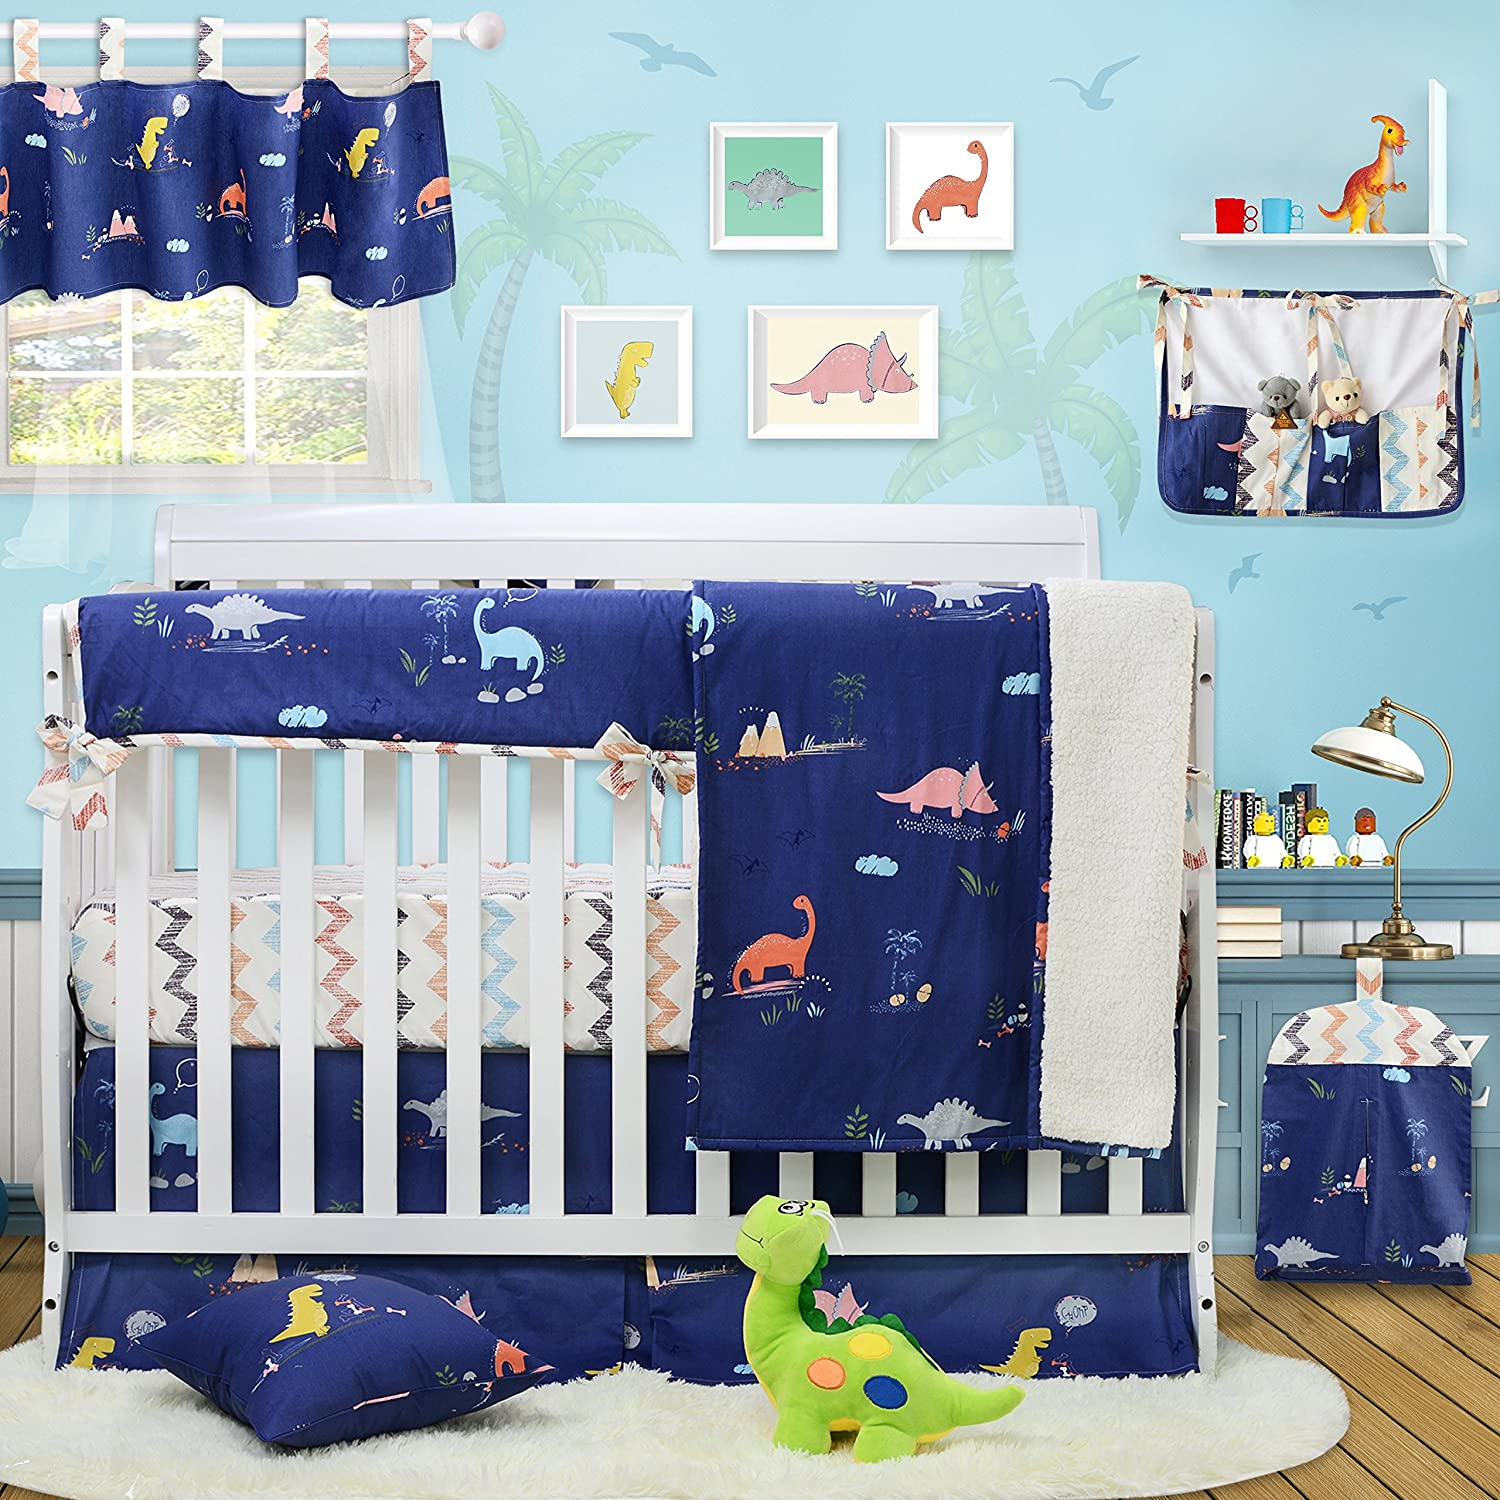 Brandream Dinosaur Crib Bedding With Long Crib Rail Cover 100 Cotton Baby Boy Crib Bedding Sets Blue Nursery Bedding 9 Pieces